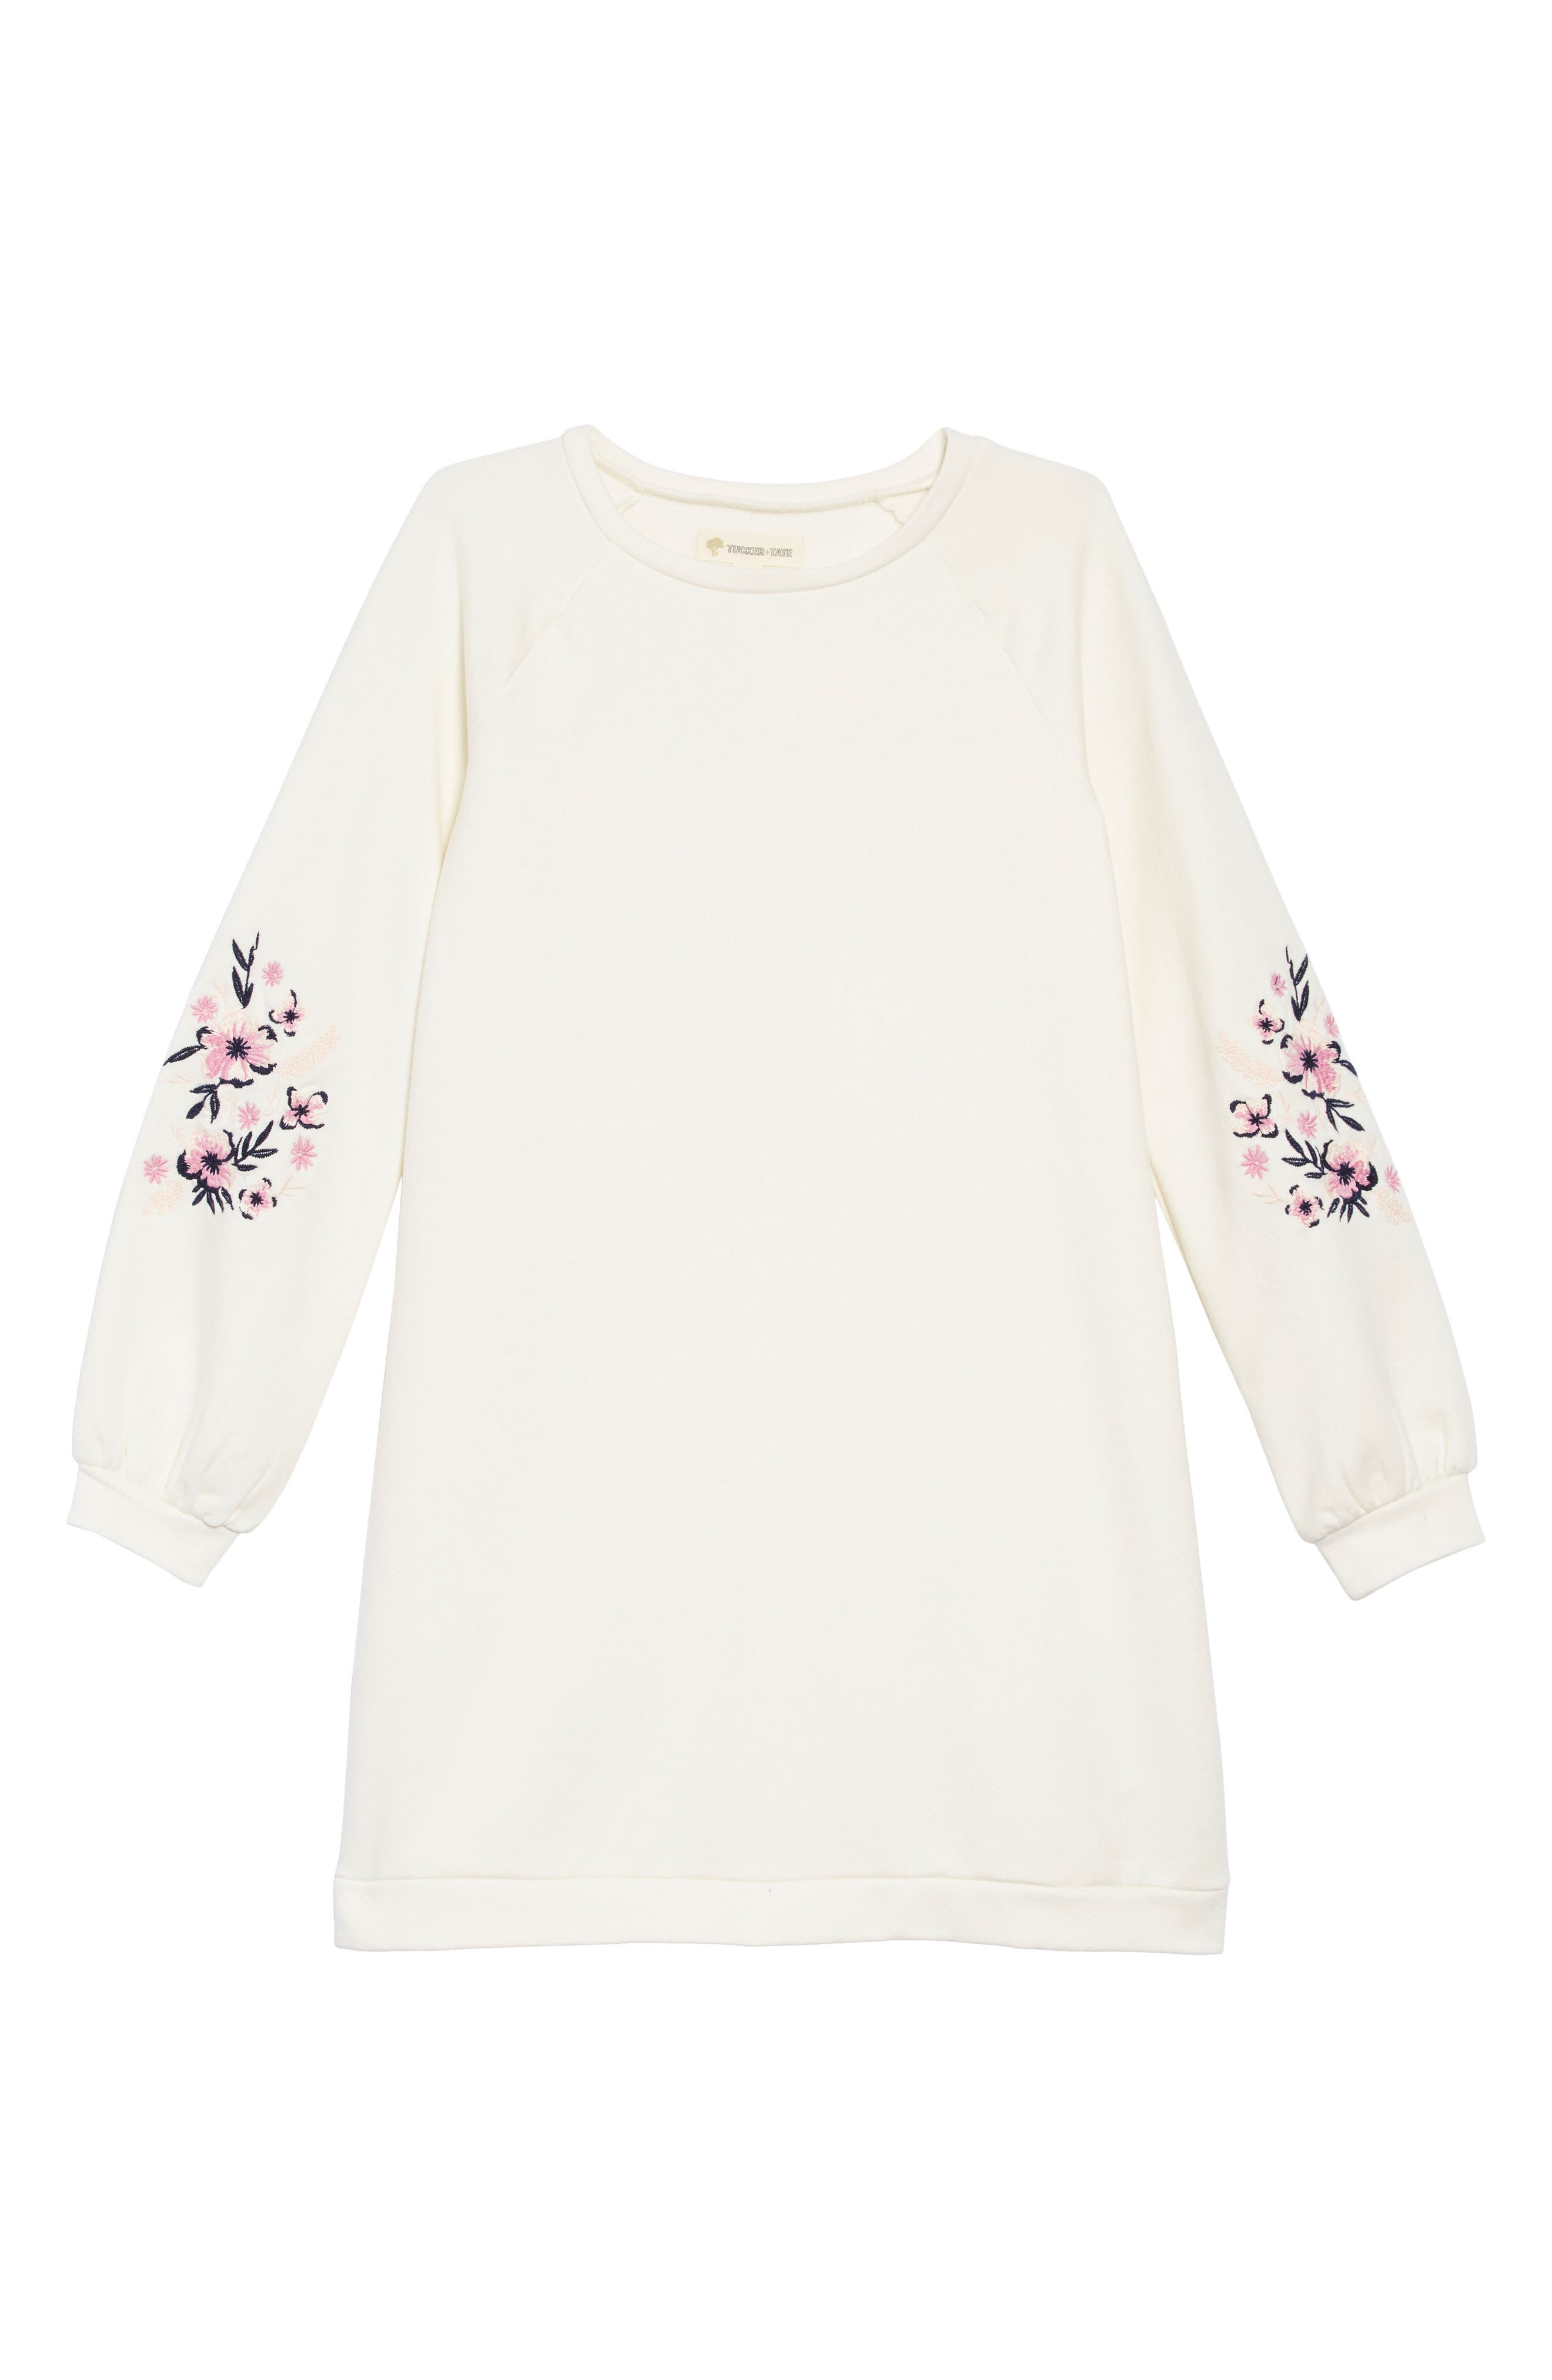 Embroidered Sleeve Sweatshirt Dress,                             Main thumbnail 1, color,                             IVORY EGRET